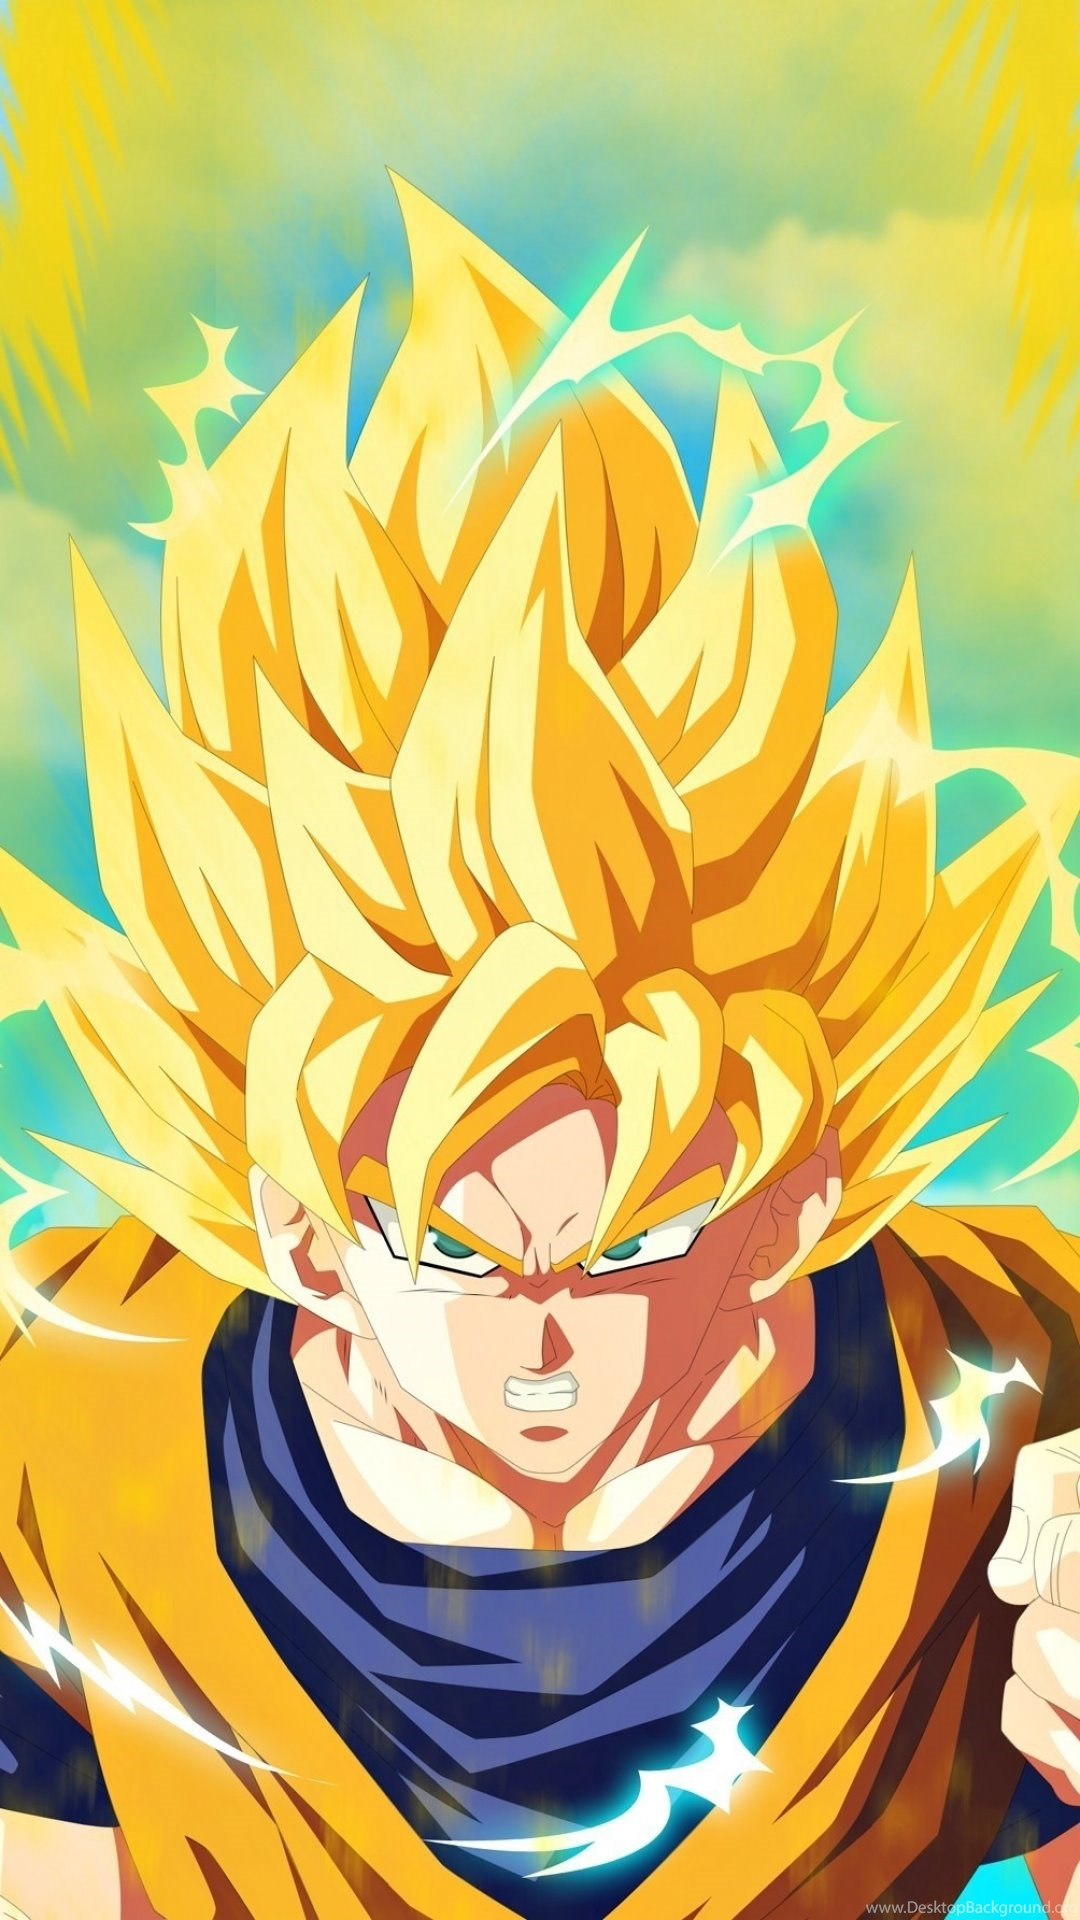 dragon ball z iphone wallpaper iphone 6 plus anime z wallpapers id 591958 7906